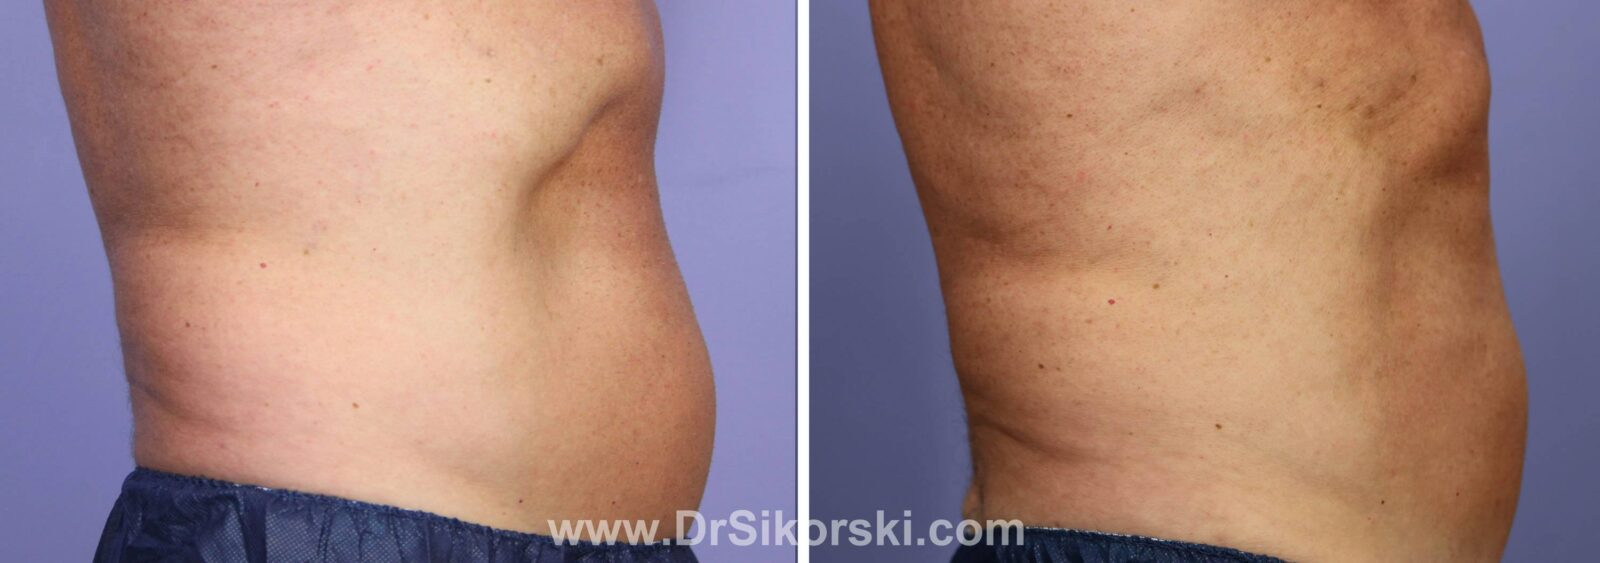 CoolSculpting Mission Viejo Before and After Patient H